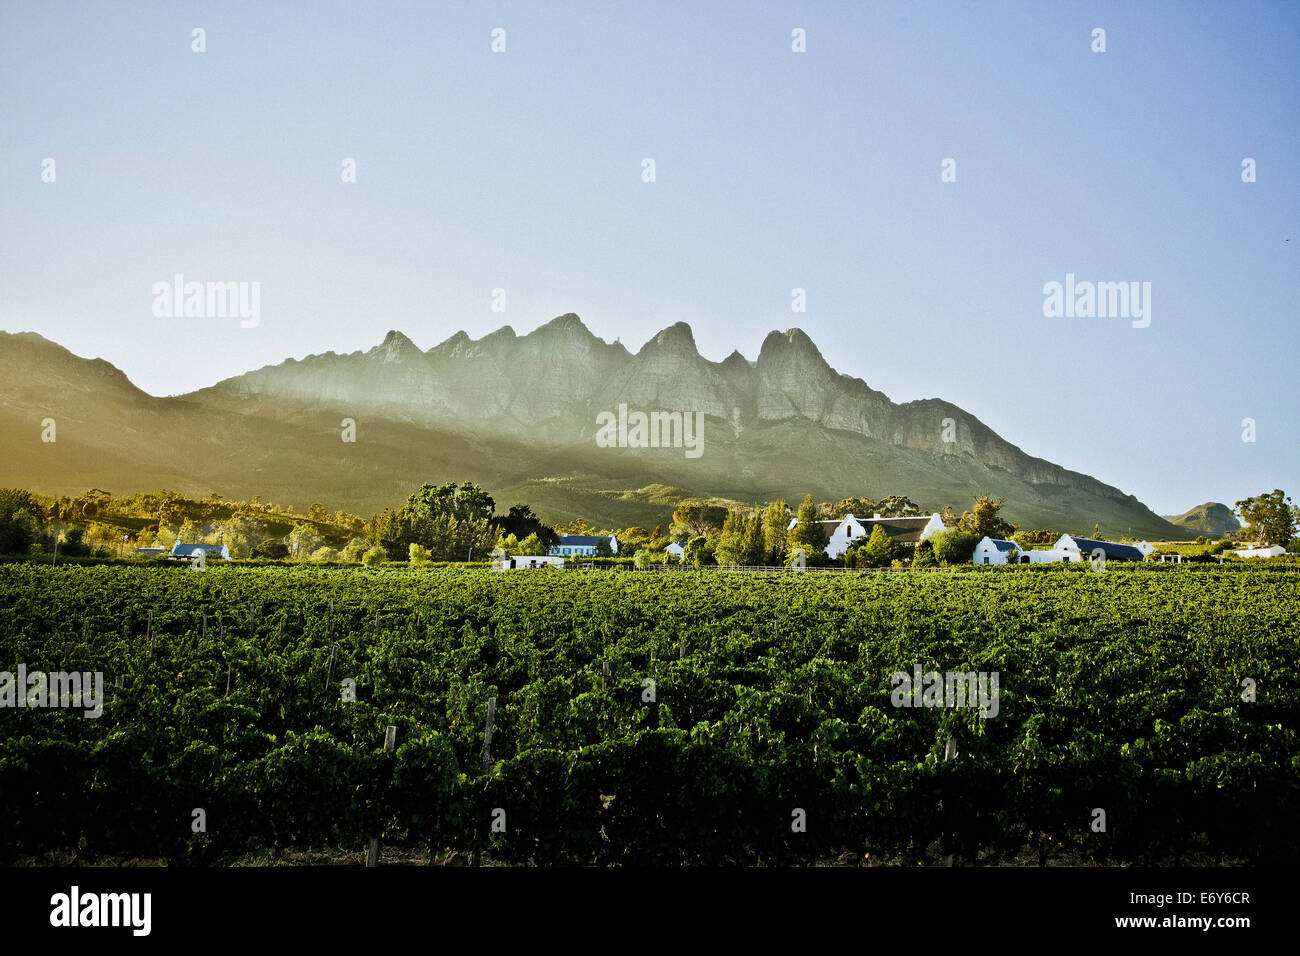 Winery in the Stellenbosch region, Western Cape, South Africa, Africa - Stock Image